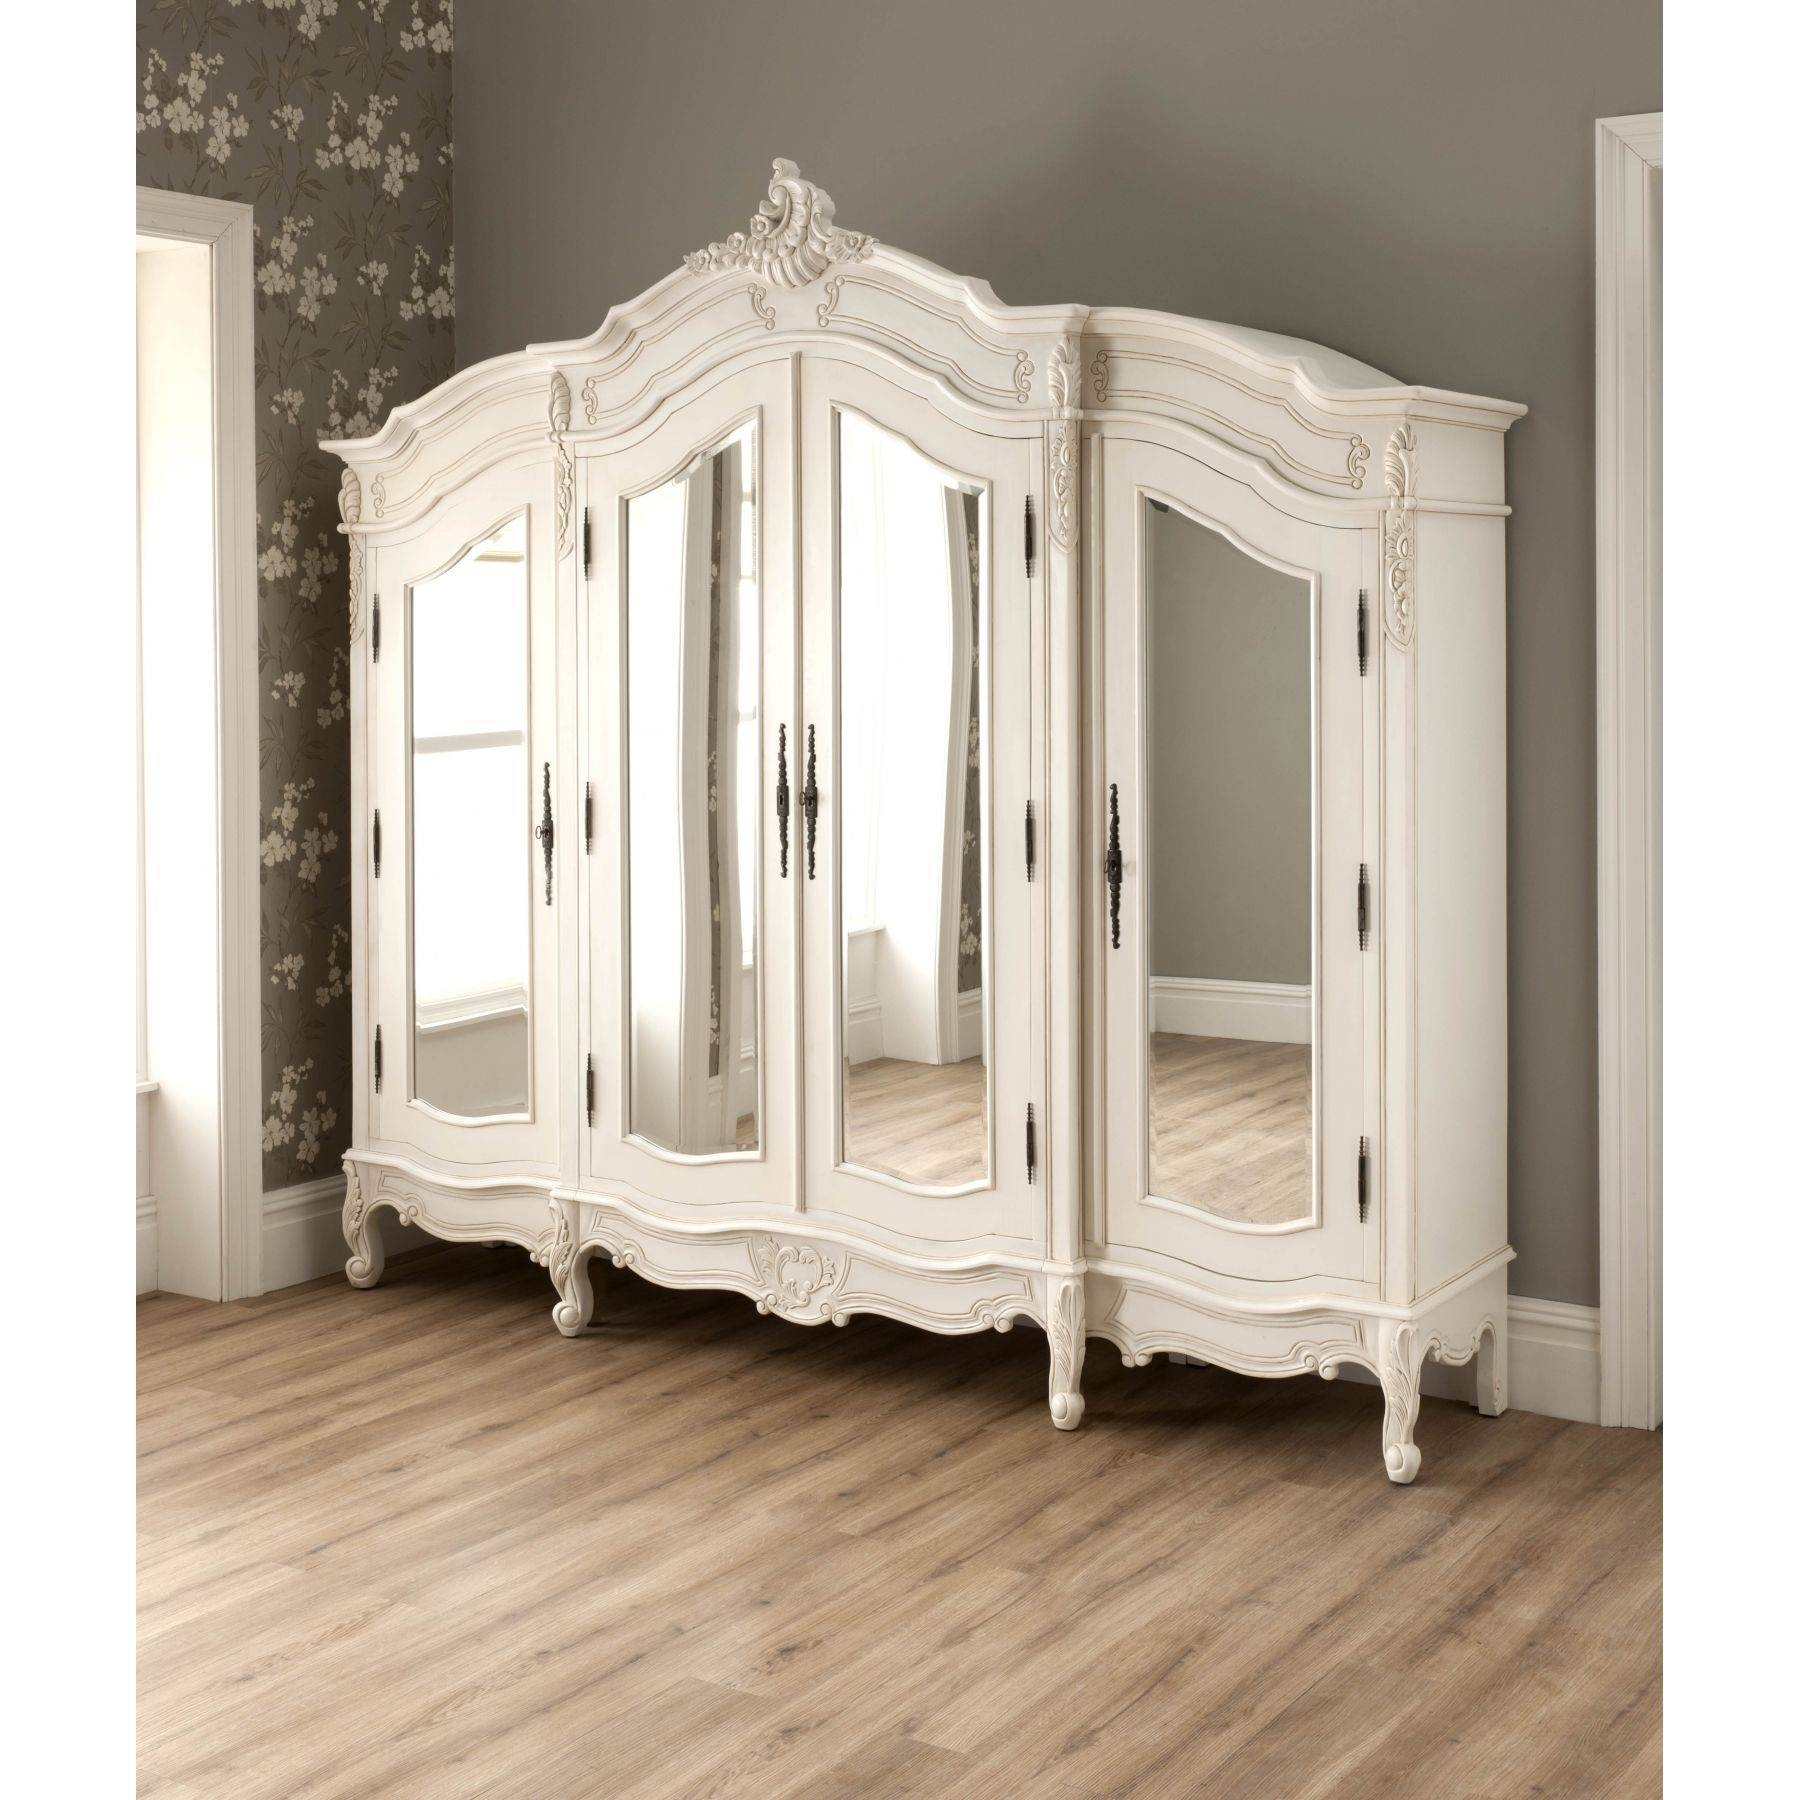 La Rochelle Antique French Wardrobe | Rococo Furniture | French throughout French Wardrobes (Image 8 of 15)